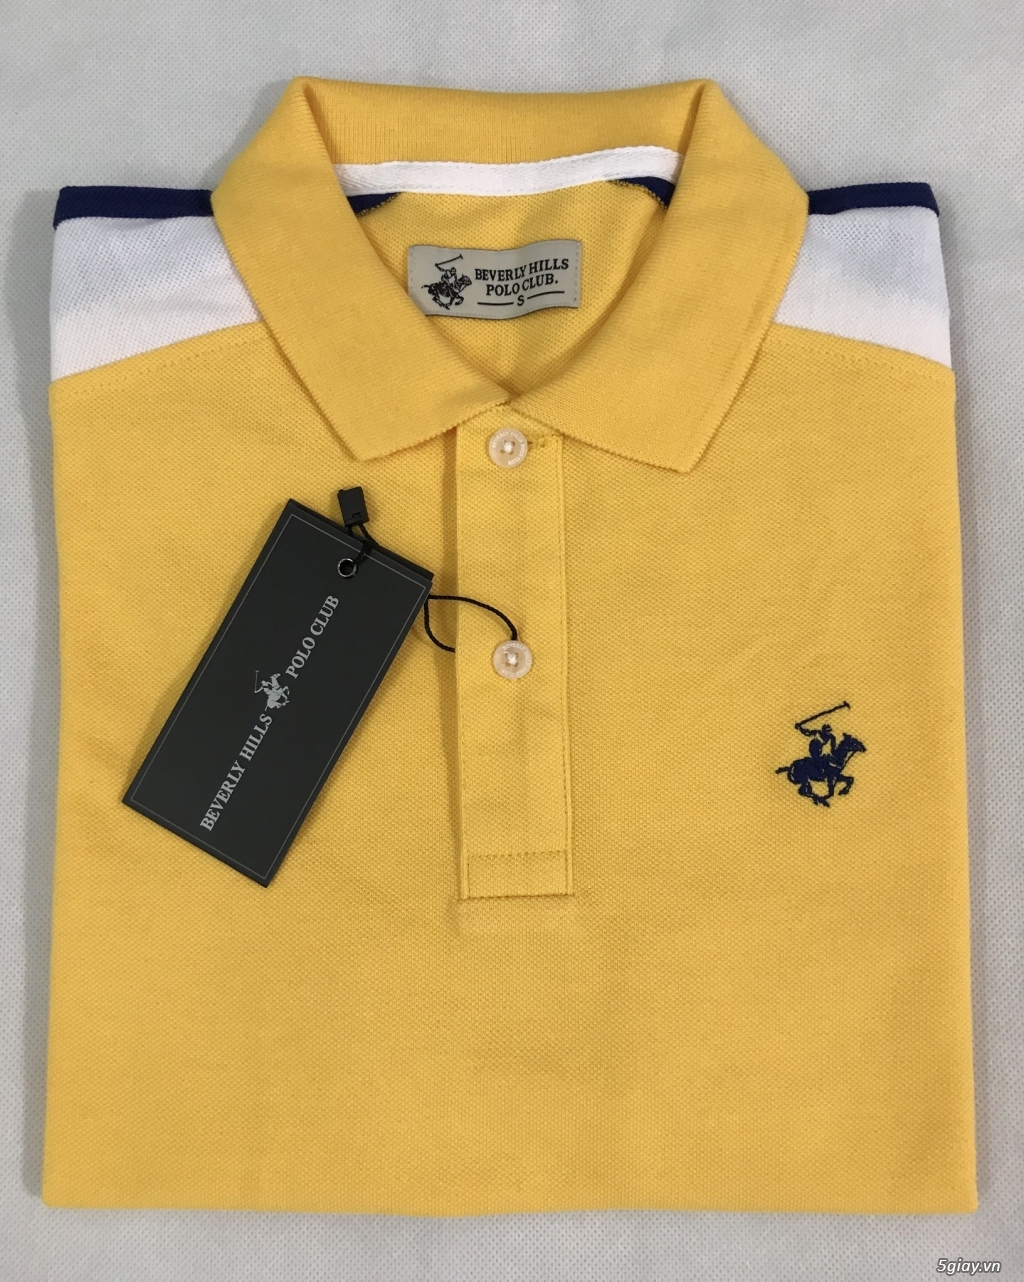 Polo RL,tonny hilfiger,guess,polo club beverly hills ... usa - 10